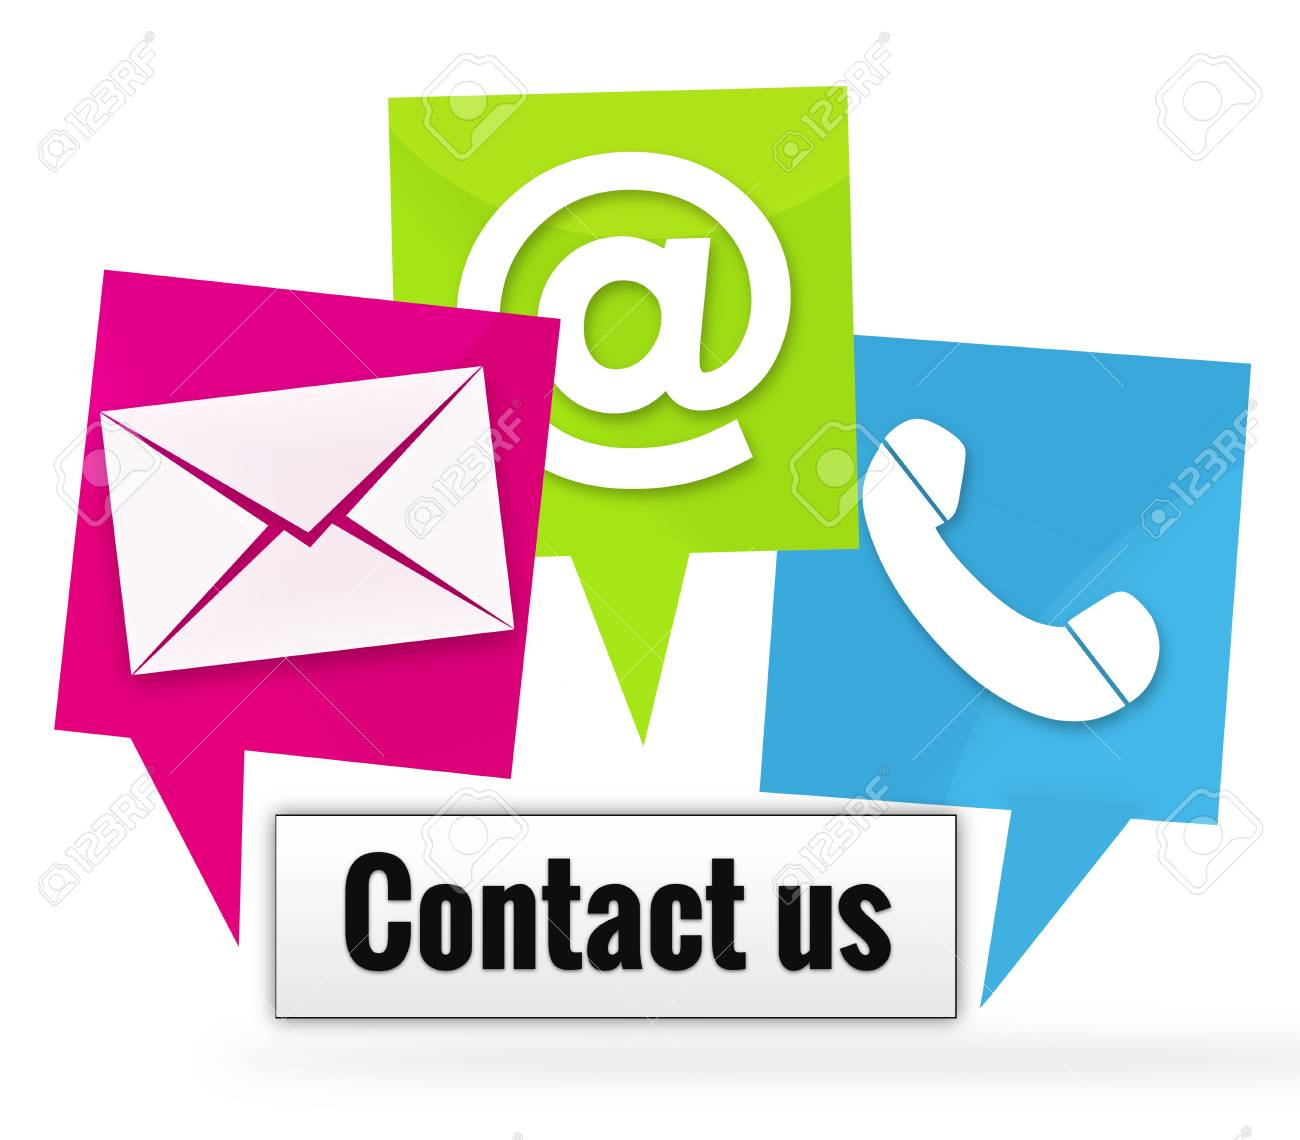 Contact Us - 36160757